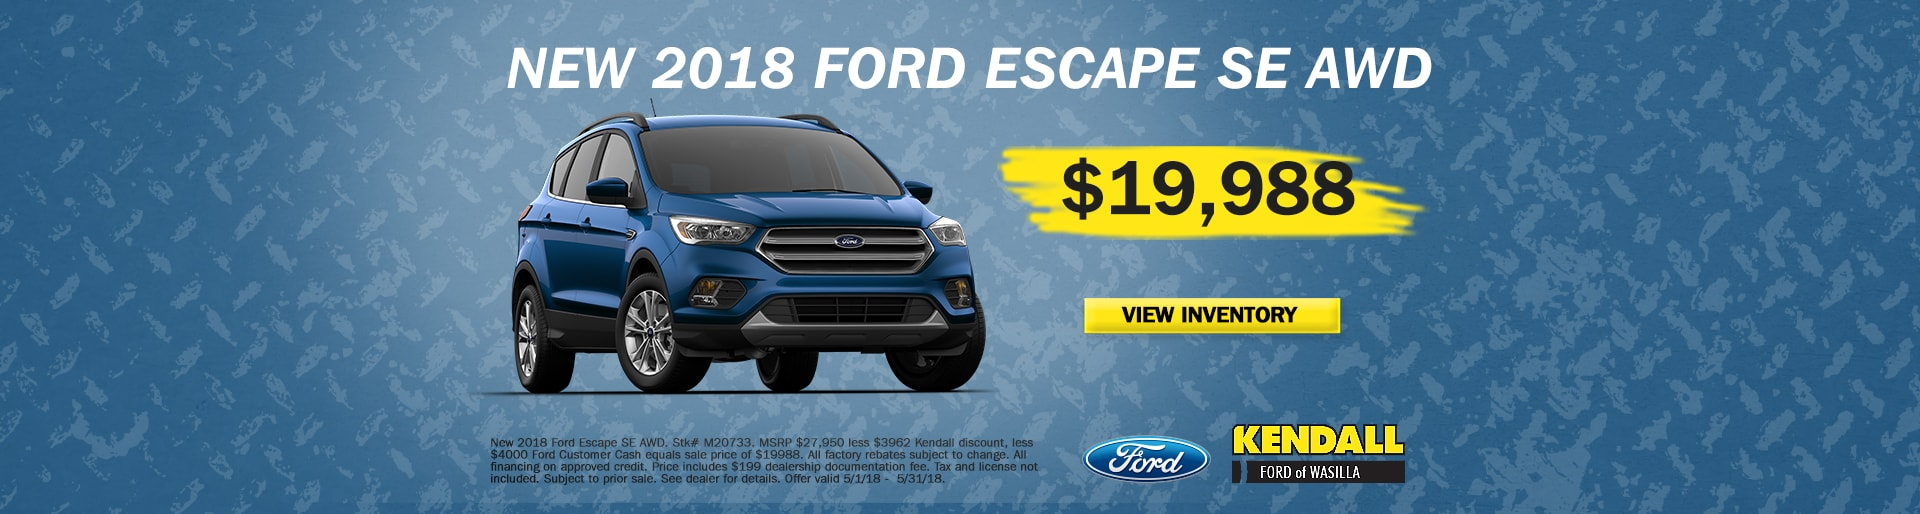 Kendall Ford Wasilla >> New, Certified, & Used Ford Cars, Trucks, & SUVs for sale   Ford Dealership   Kendall Ford of ...